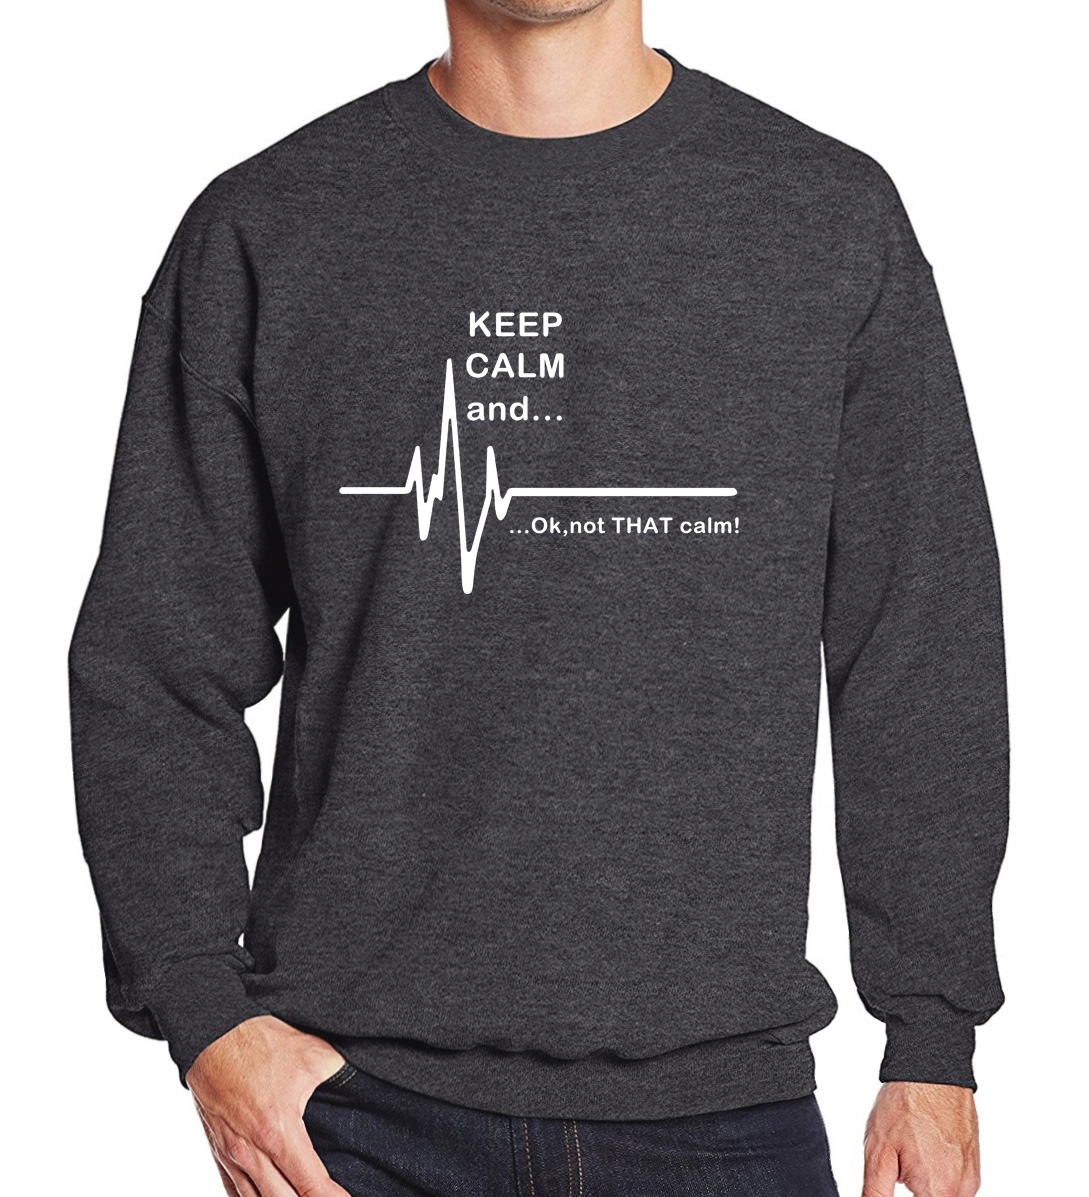 Men's Sportswear 2019 Hoodies Men Keep Calm And...Not That Calm Funny EKG Heart Rate Print Fashion Sweatshirt Fleece Tracksuits